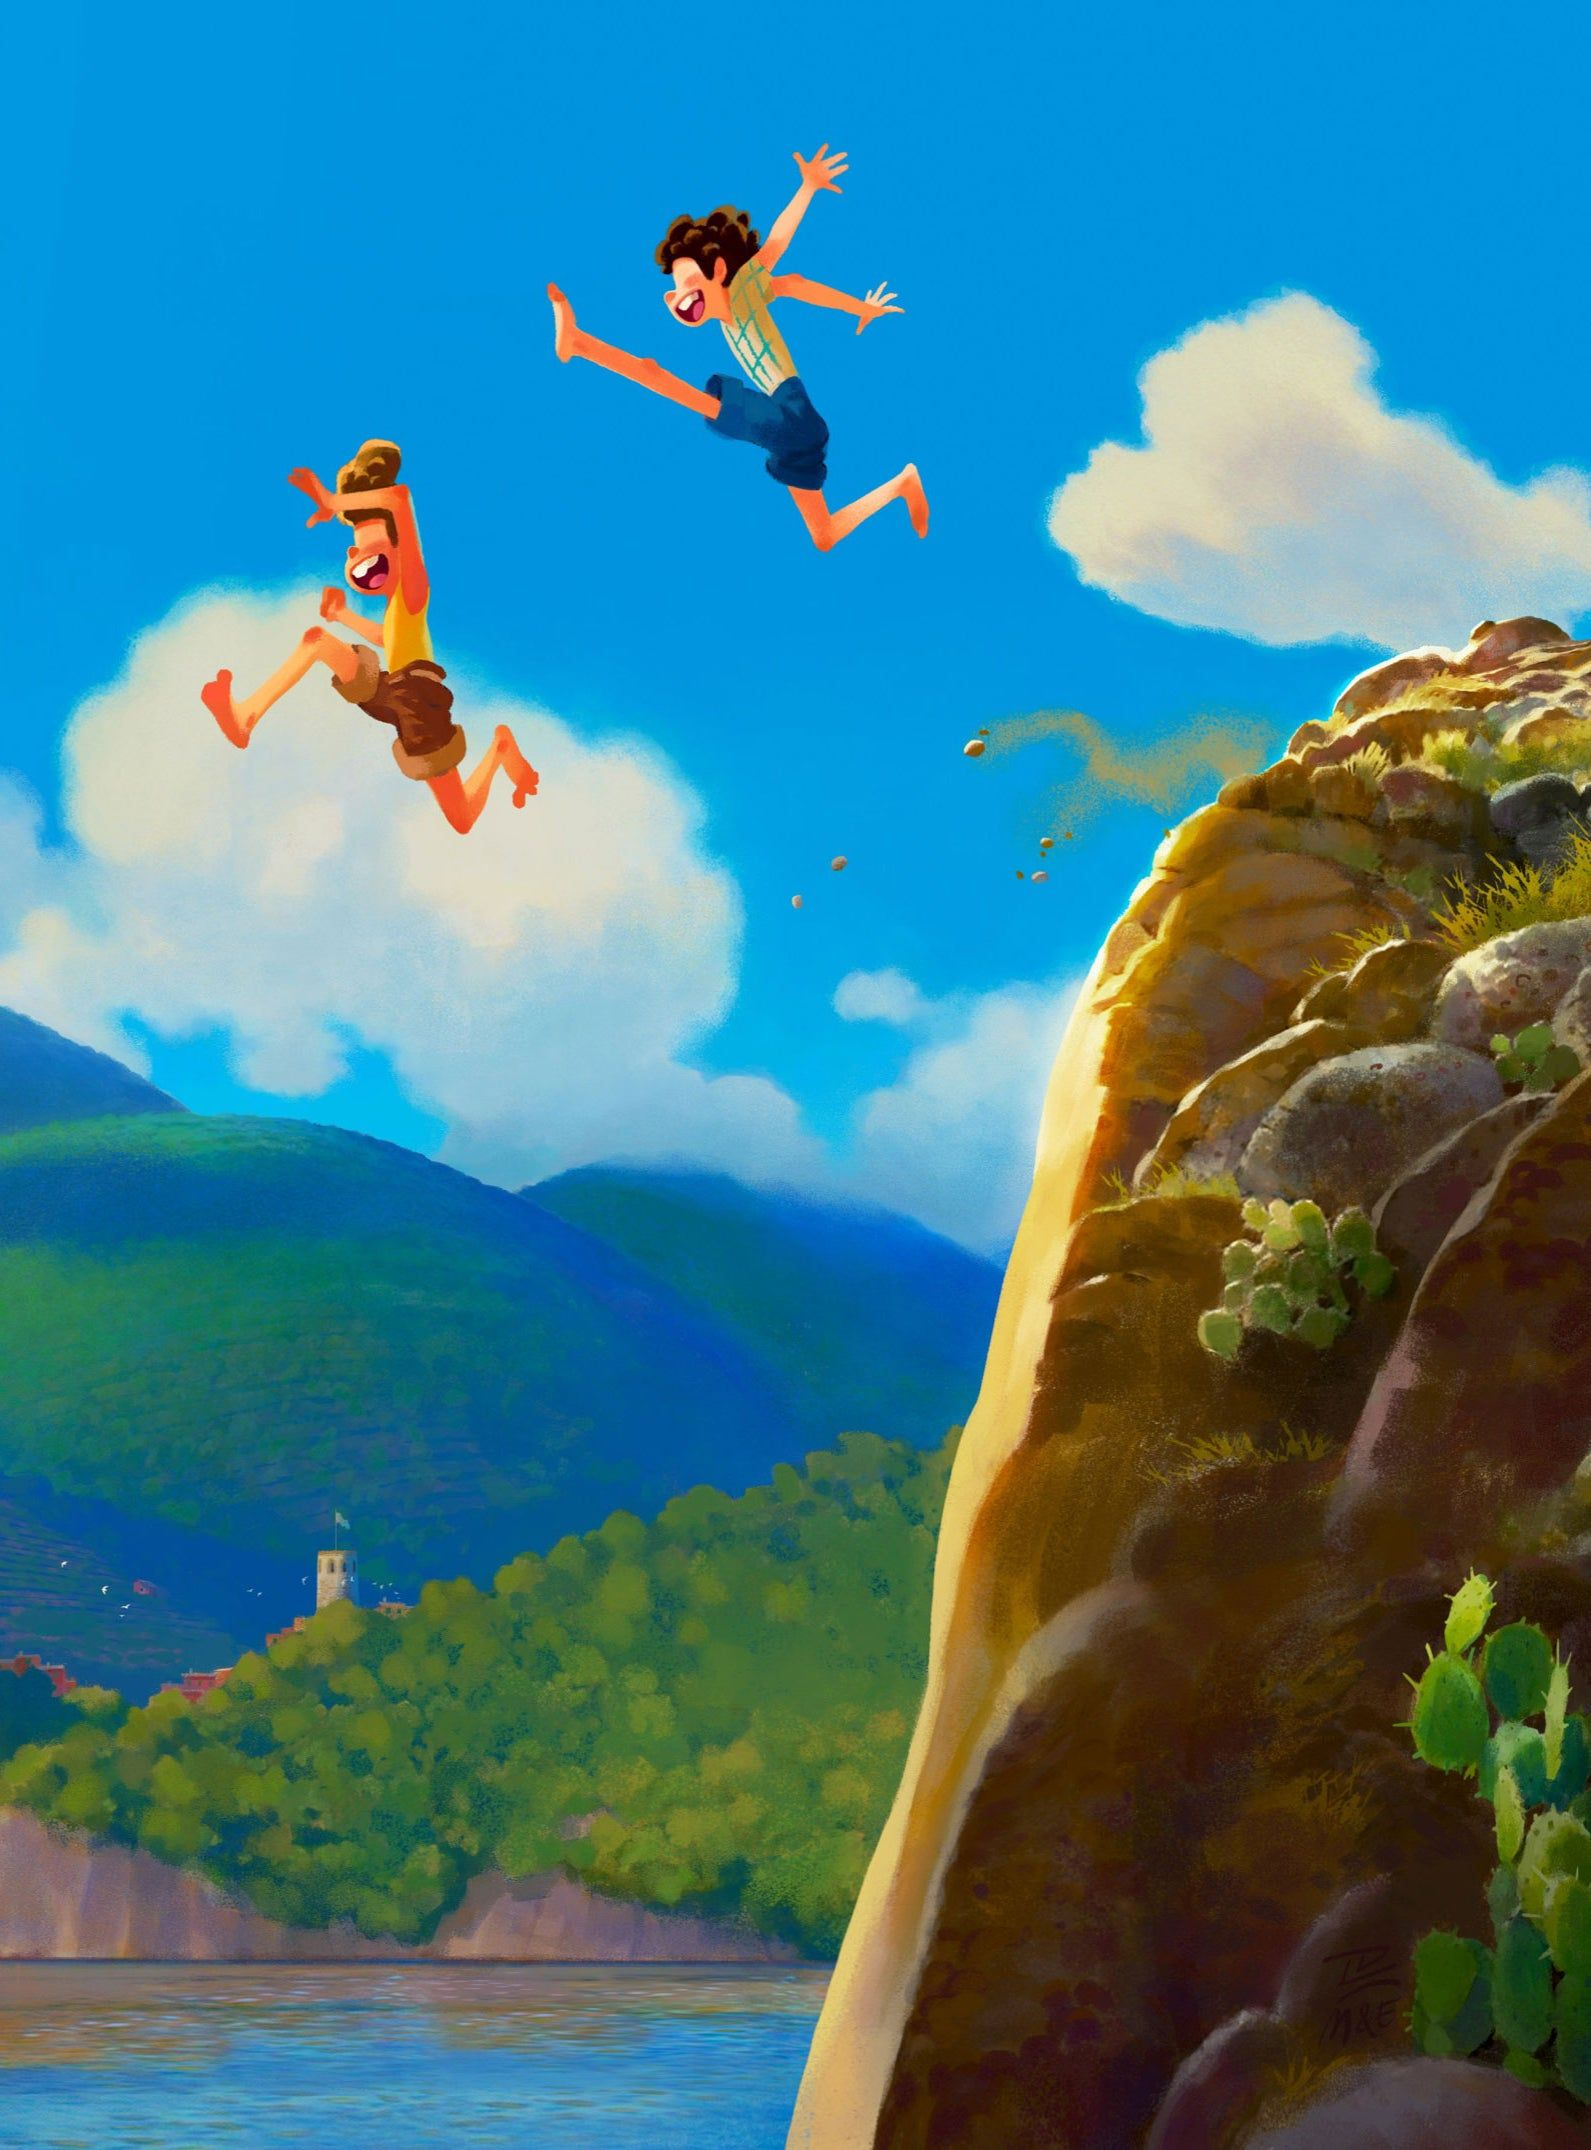 Disney Pixar S Luca Looks Like The Summer In Italy You Wish You Had This Year Disney Wallpaper Disney Fan Art New Animation Movies